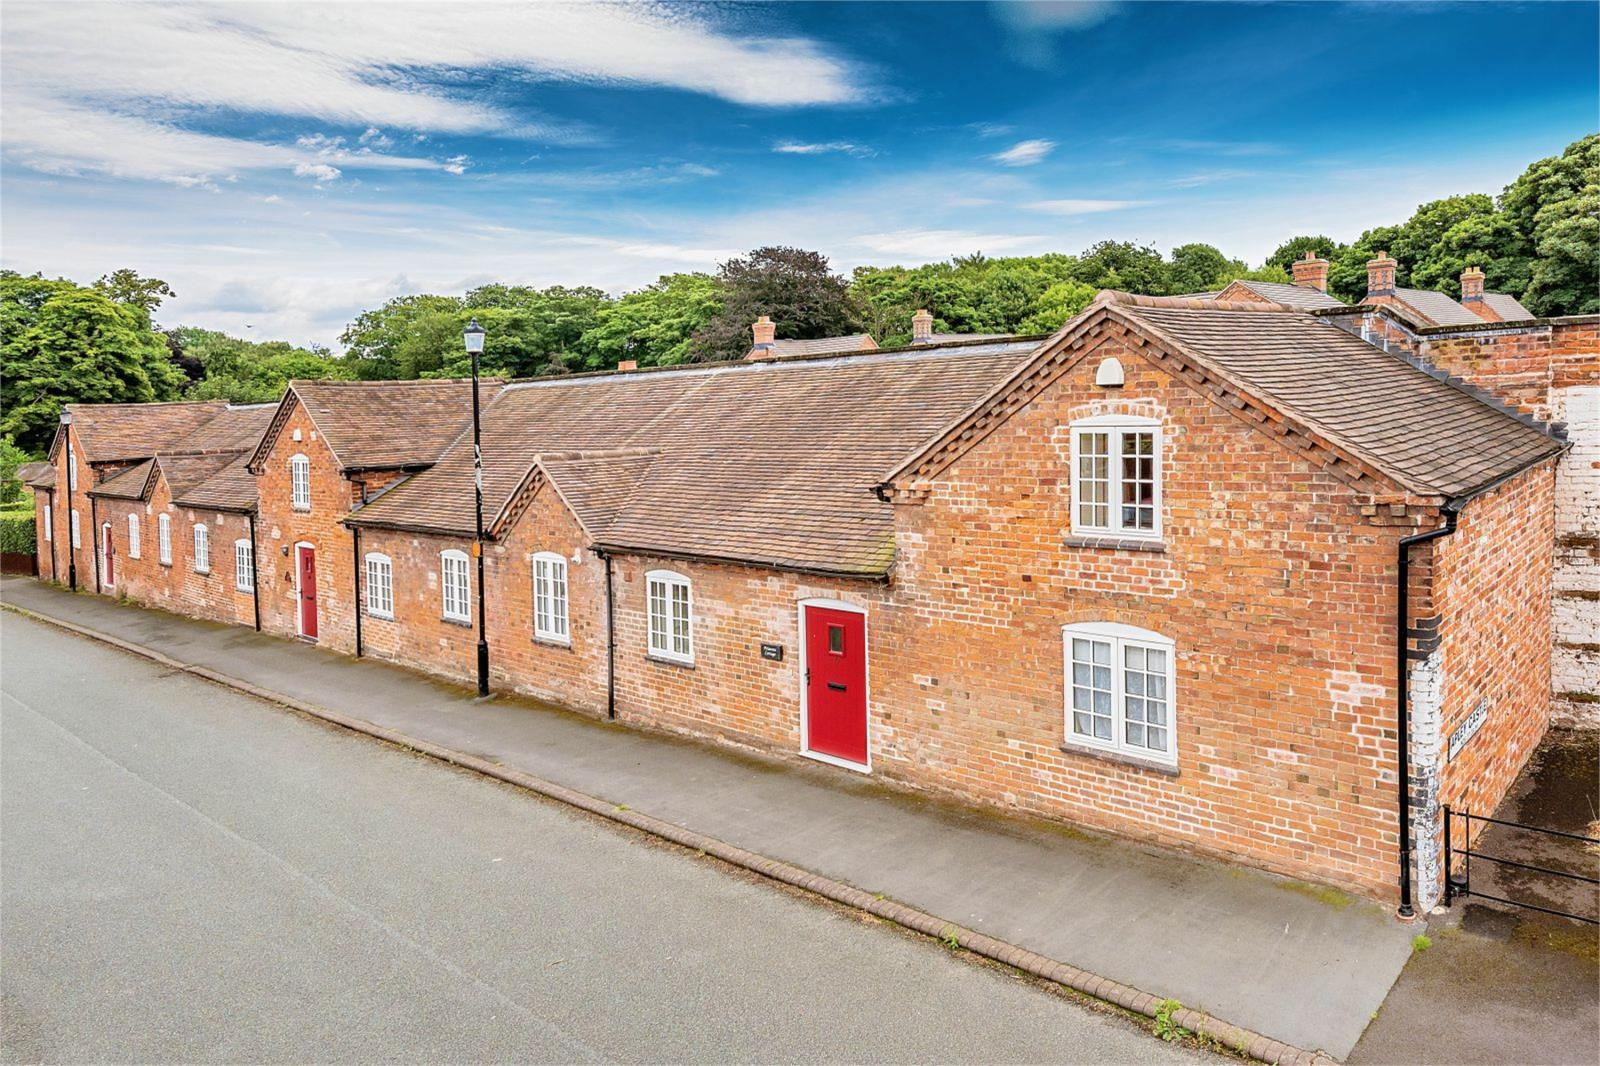 3 Bedrooms Terraced House for sale in Primrose Cottage, 39 Apley Castle, Apley, Telford, Shropshire, TF1